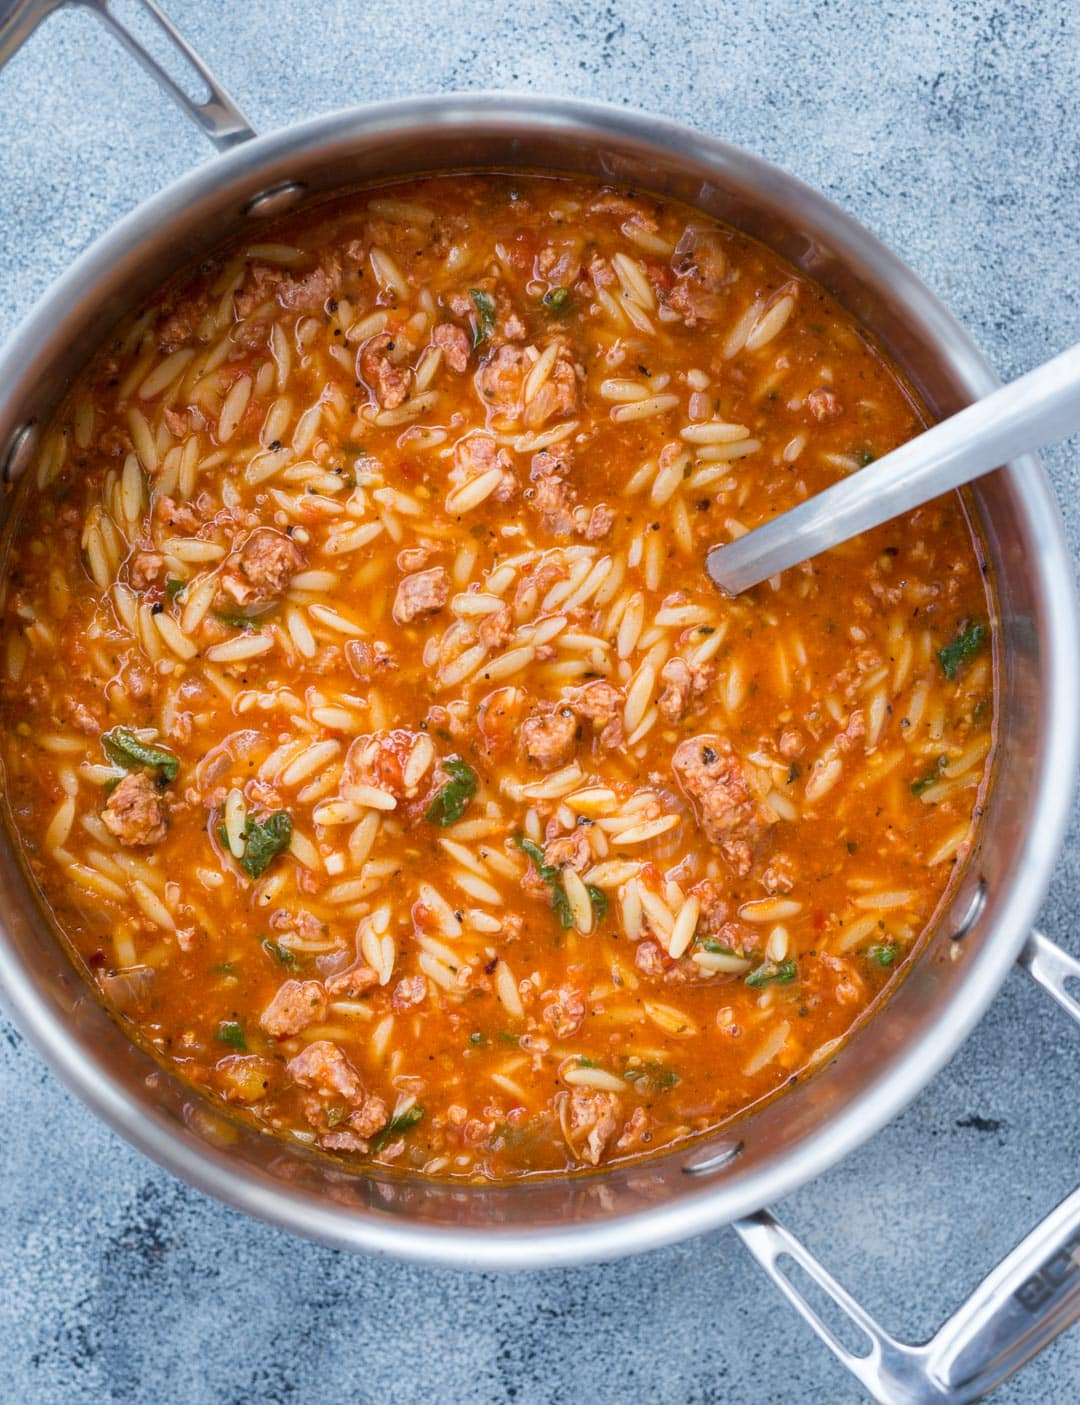 This Italian Sausage Soup with Spicy Italian Sausage, Orzo Pasta with rich tomato flavor is delicious and takes only 20 minutes to make.